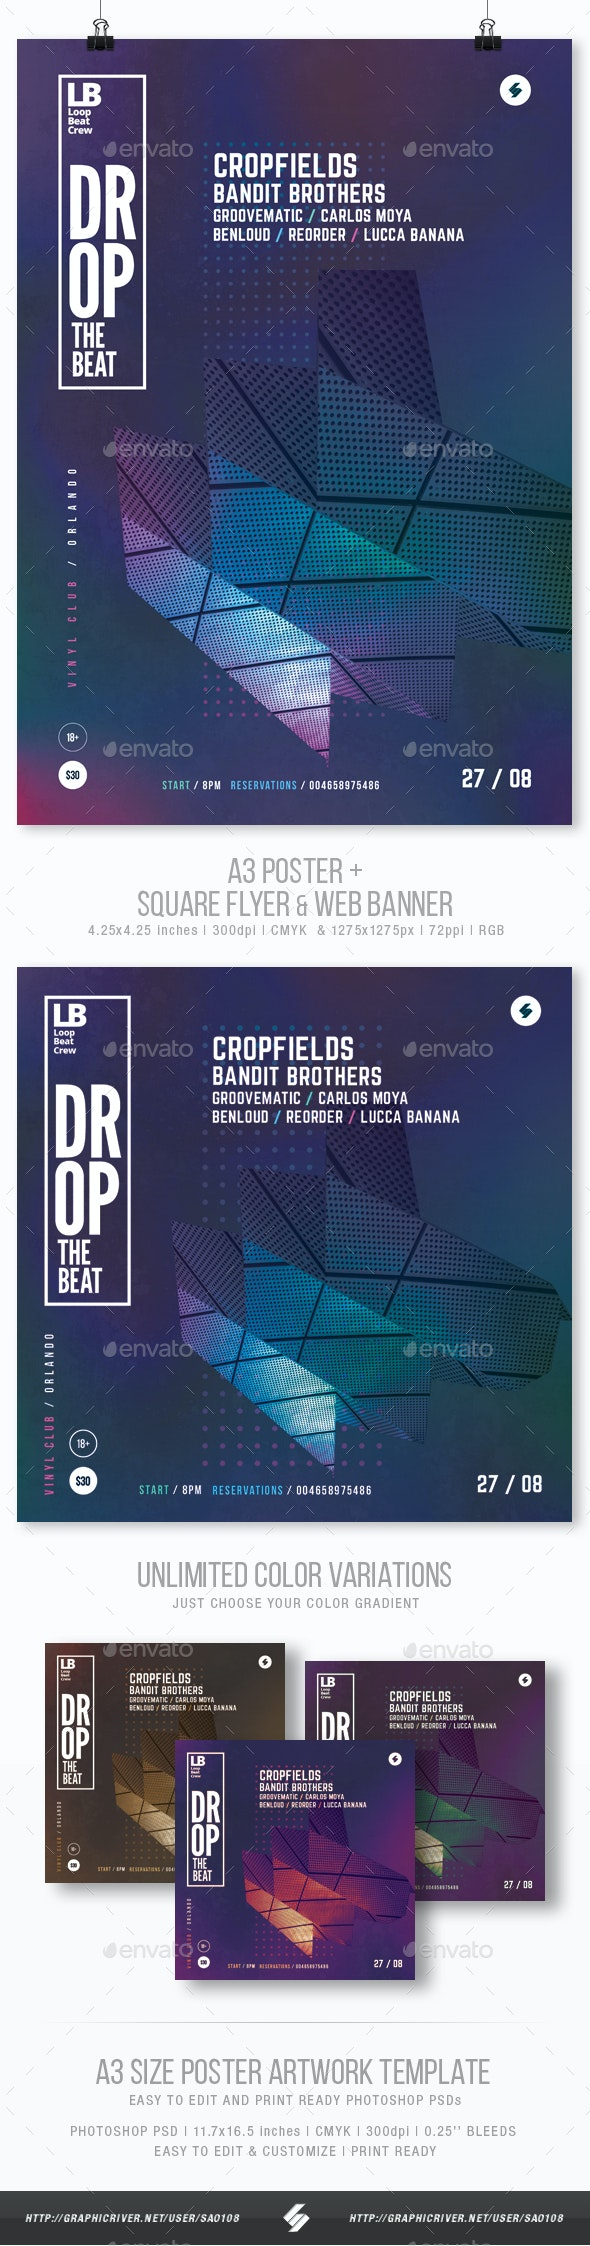 Drop The Beat - Club Party Flyer / Poster Template A3 - Clubs & Parties Events